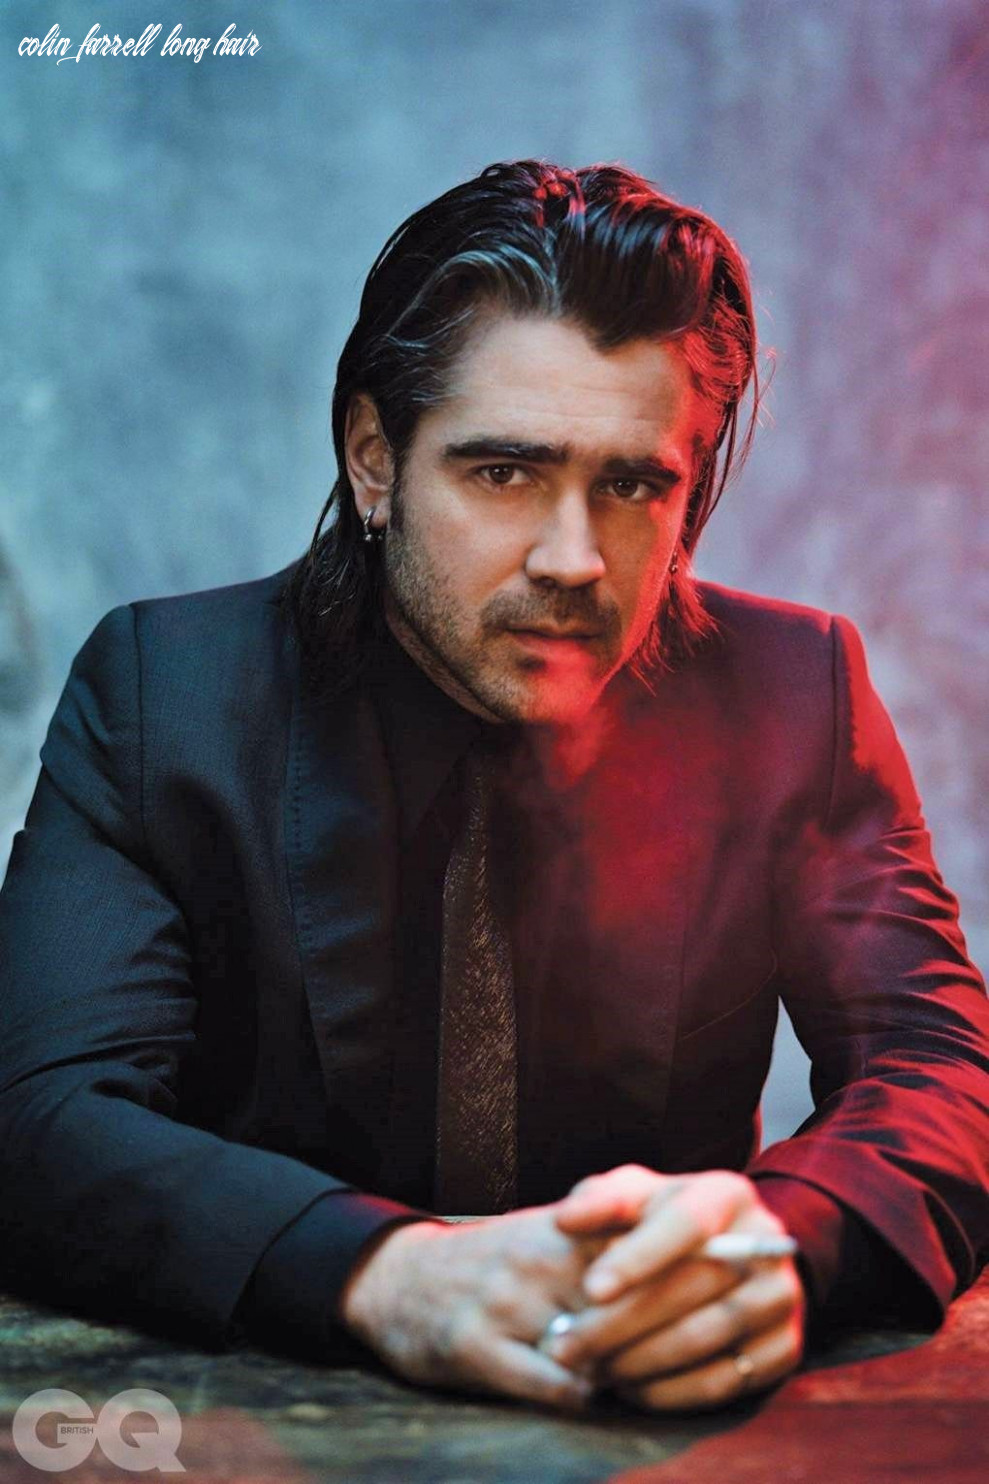 11 coolest long hairstyles for men (11 update   colin farrell